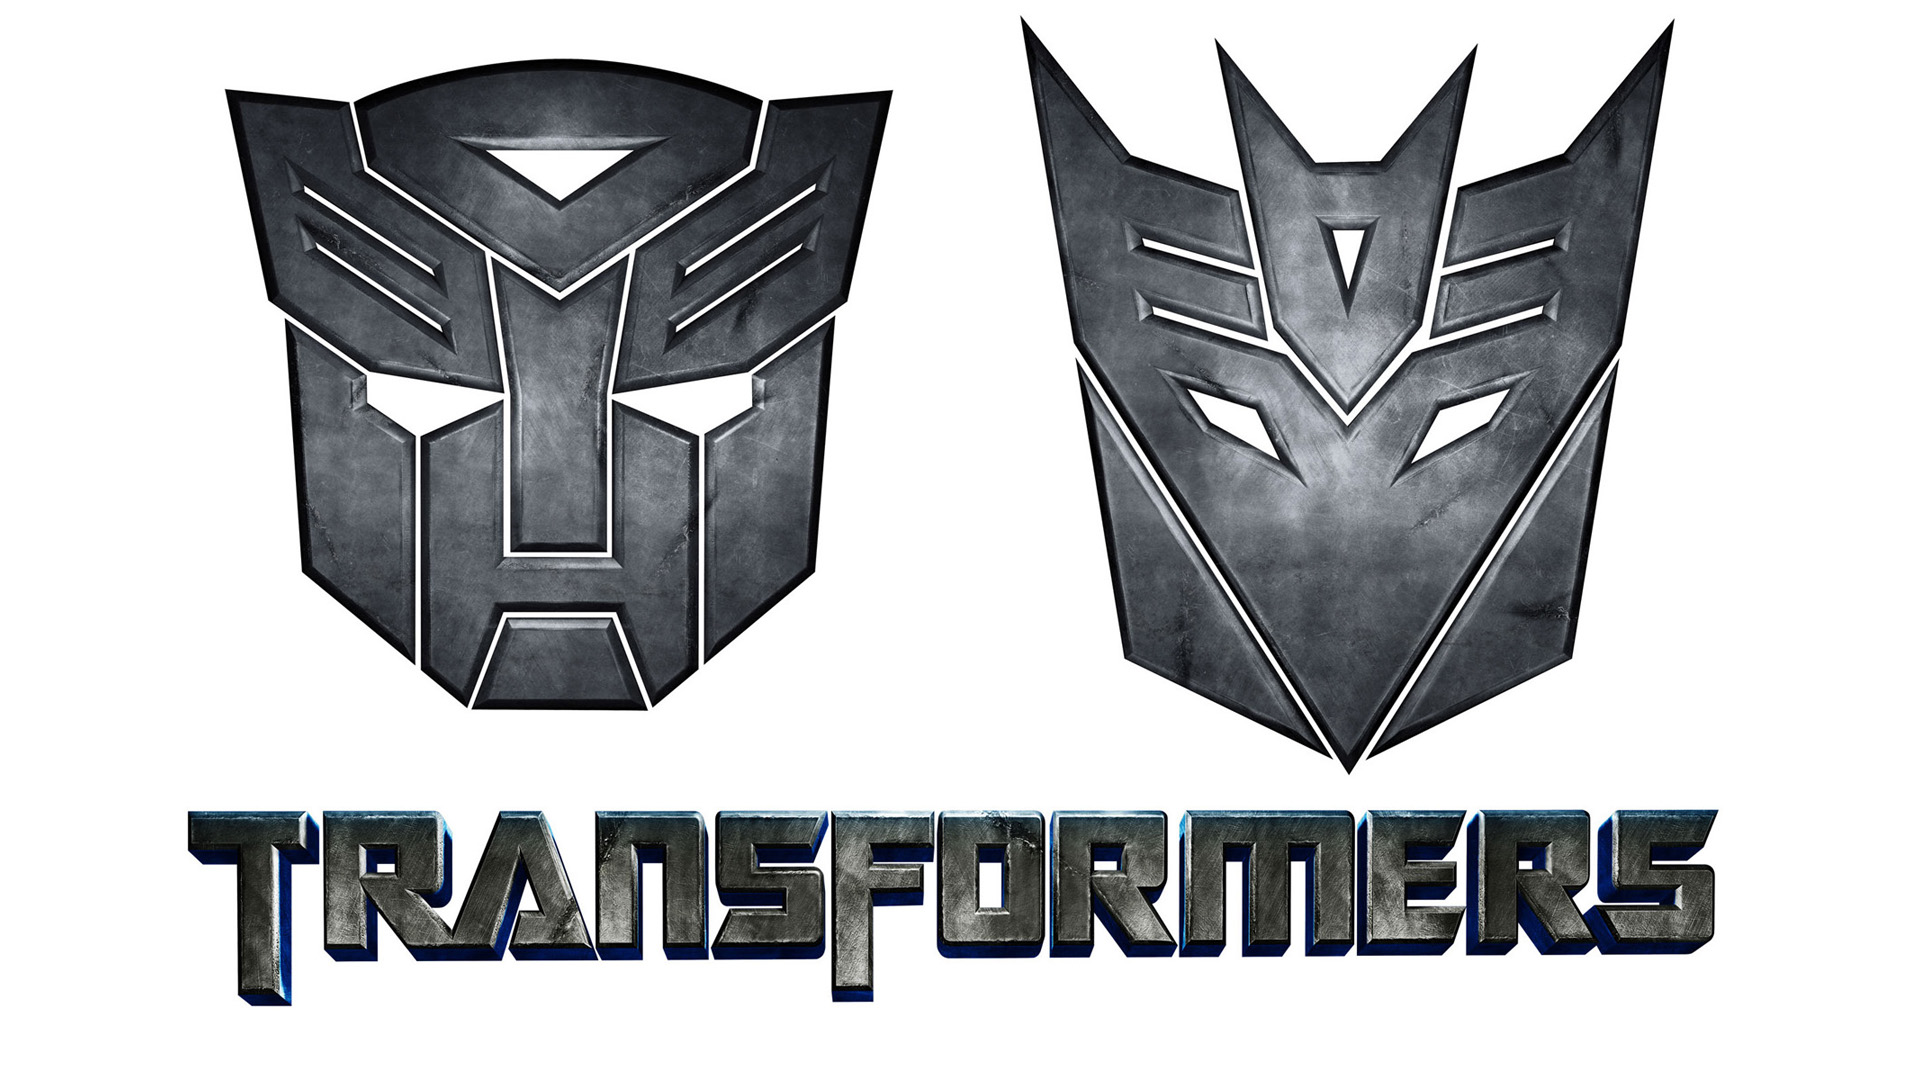 transformers, movie, wallpapers, wall, papers, 1920, 1080, pixels, revenge, fallen, widescreen